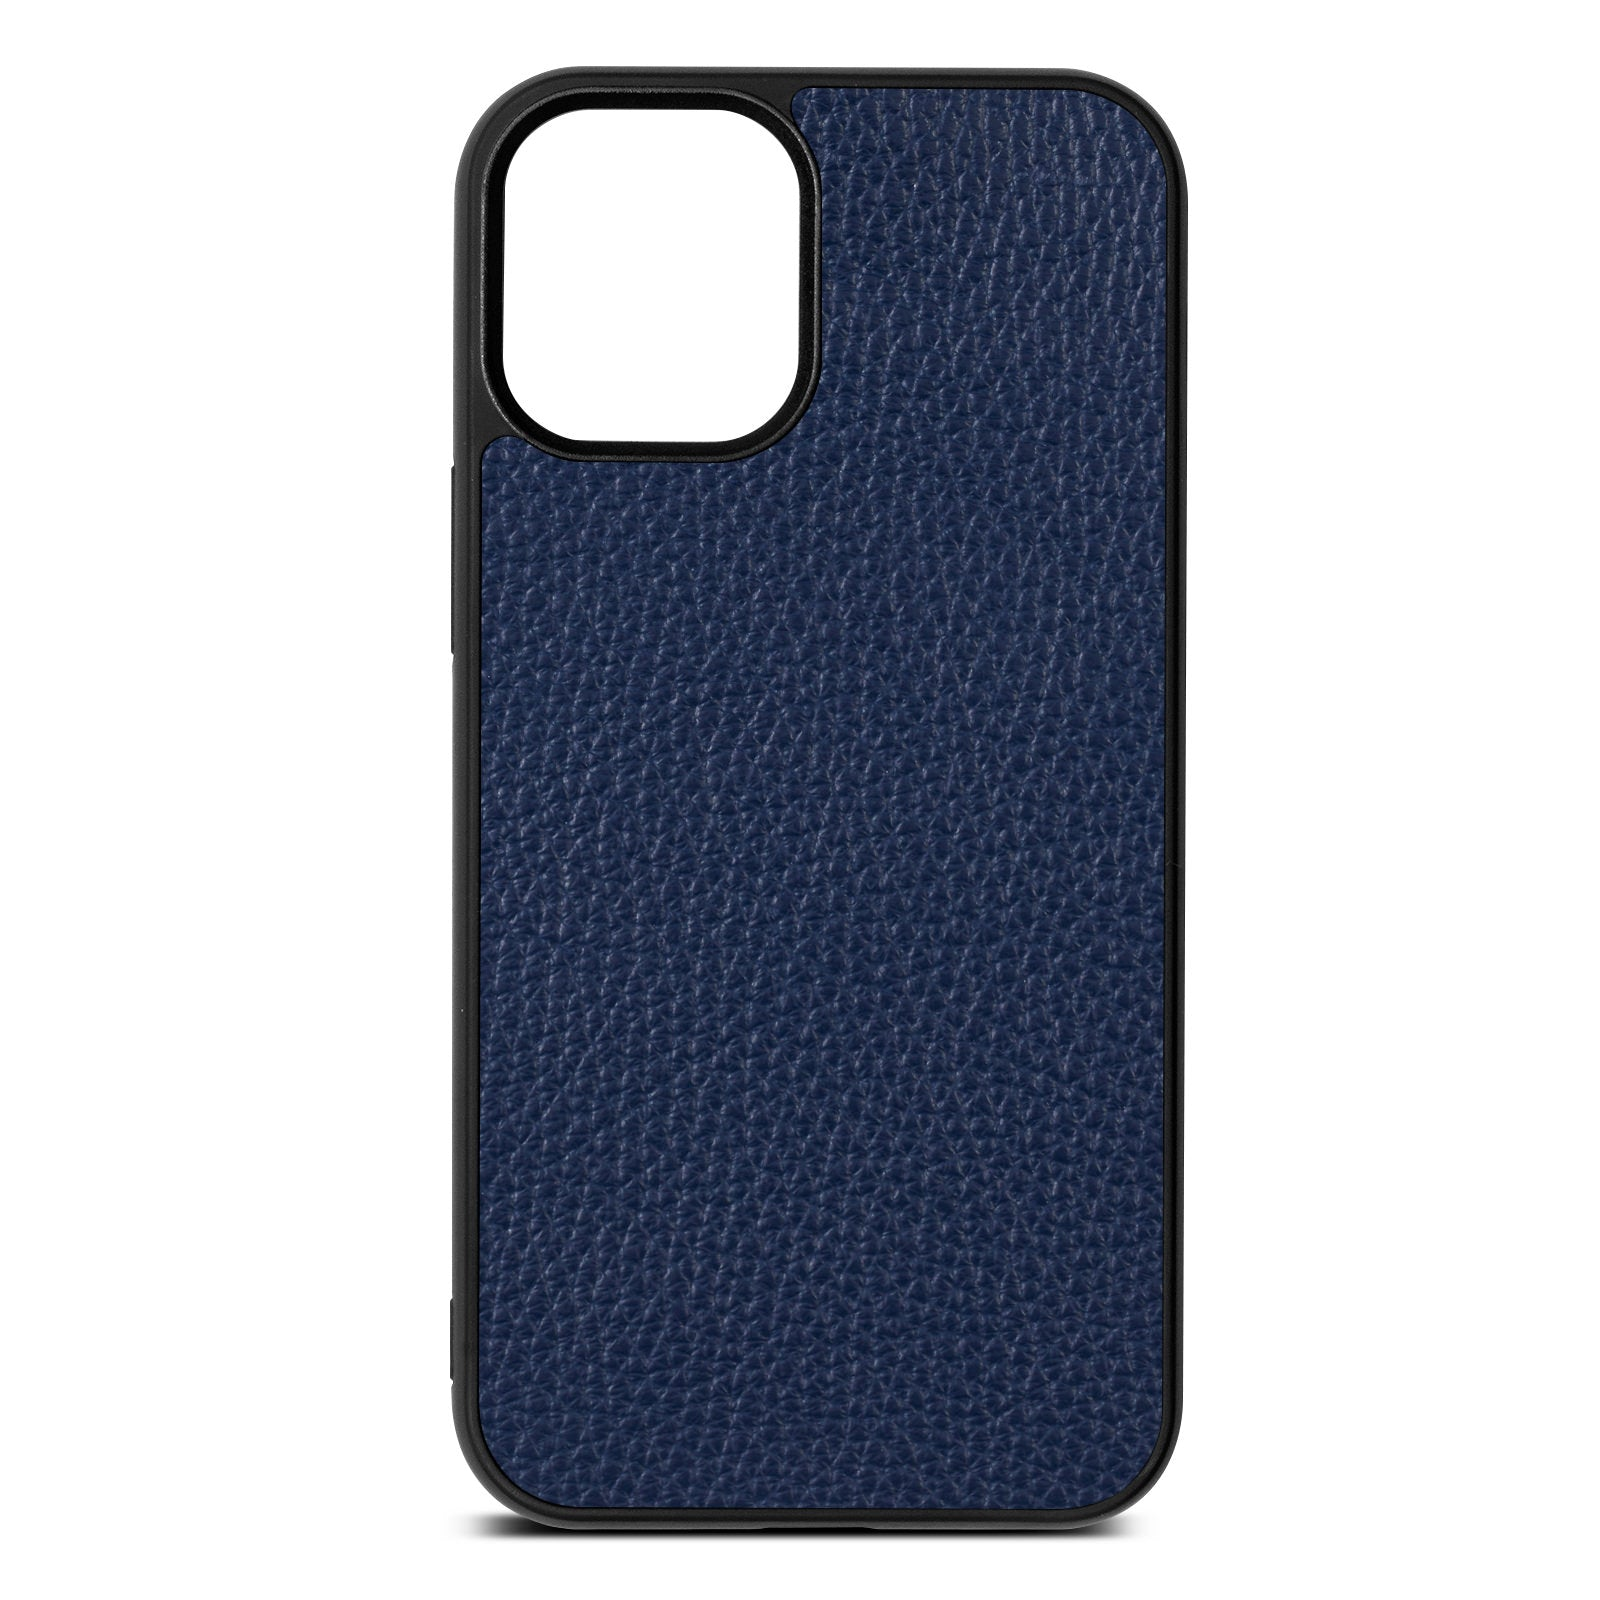 Blank iPhone 12 Mini Navy Blue Pebble Grain Leather Case